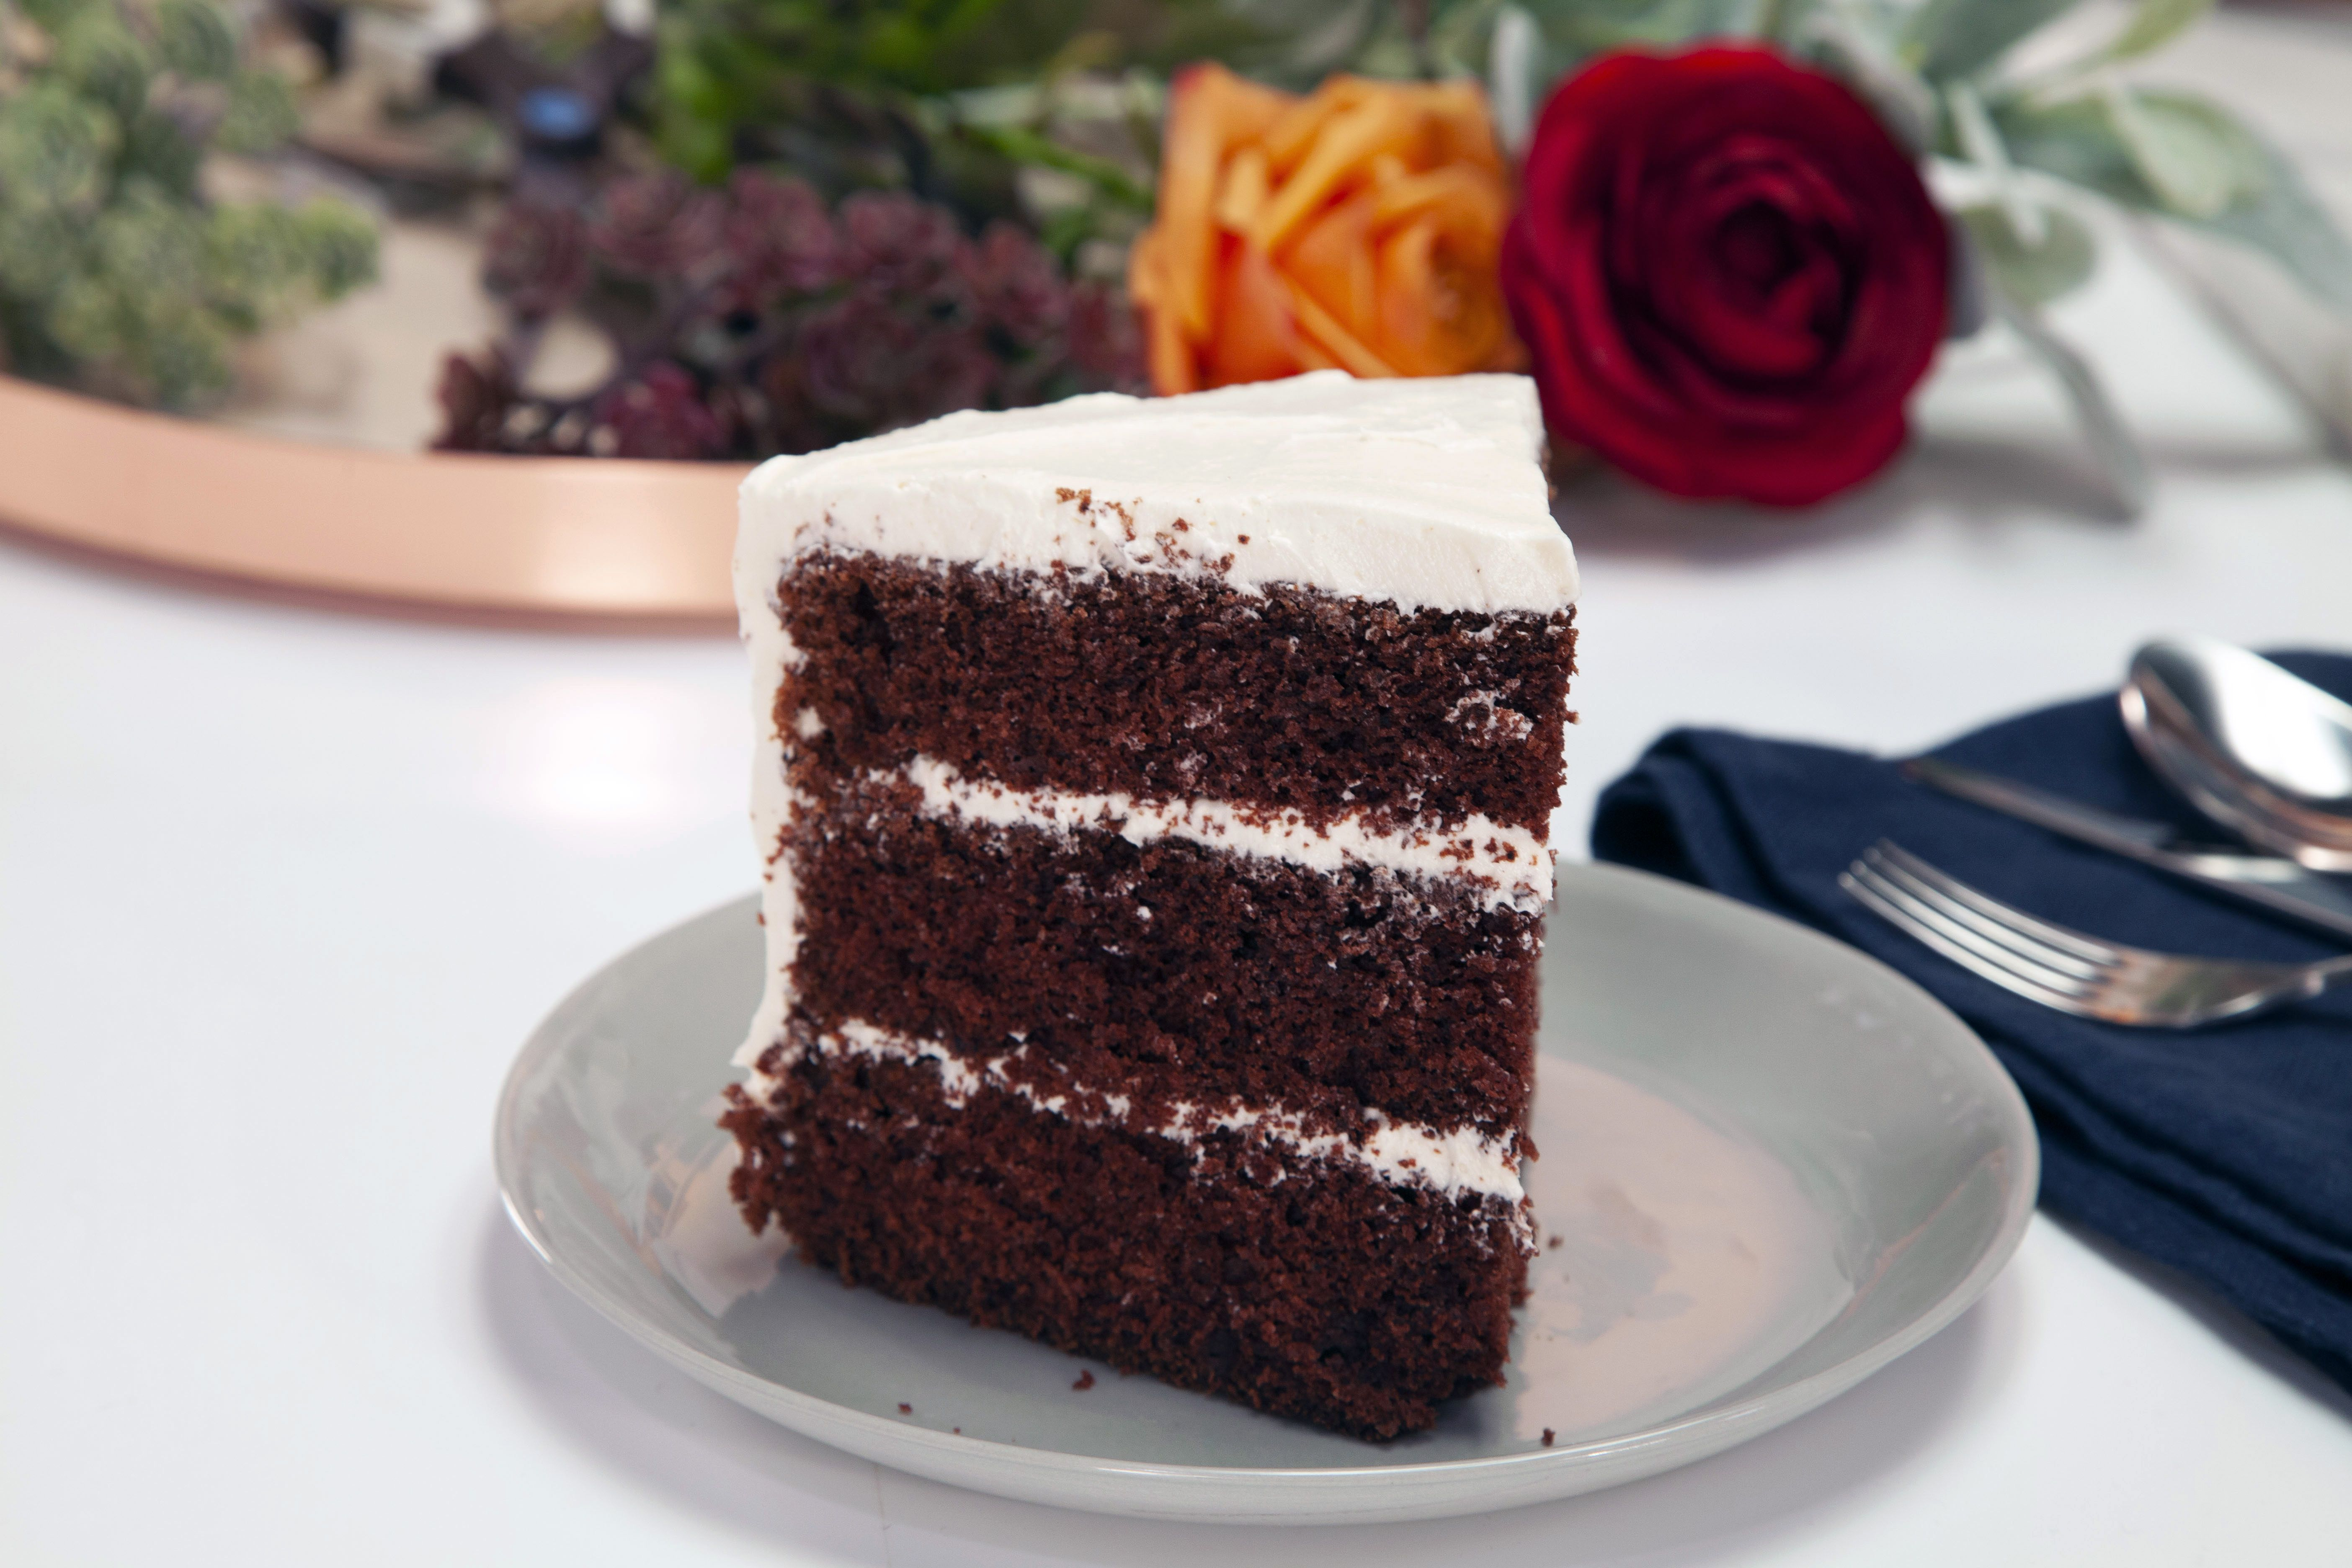 The Real Red Velvet Cake Recipe In 2020 Real Red Velvet Cake Recipe Red Velvet Cake Recipe Velvet Cake